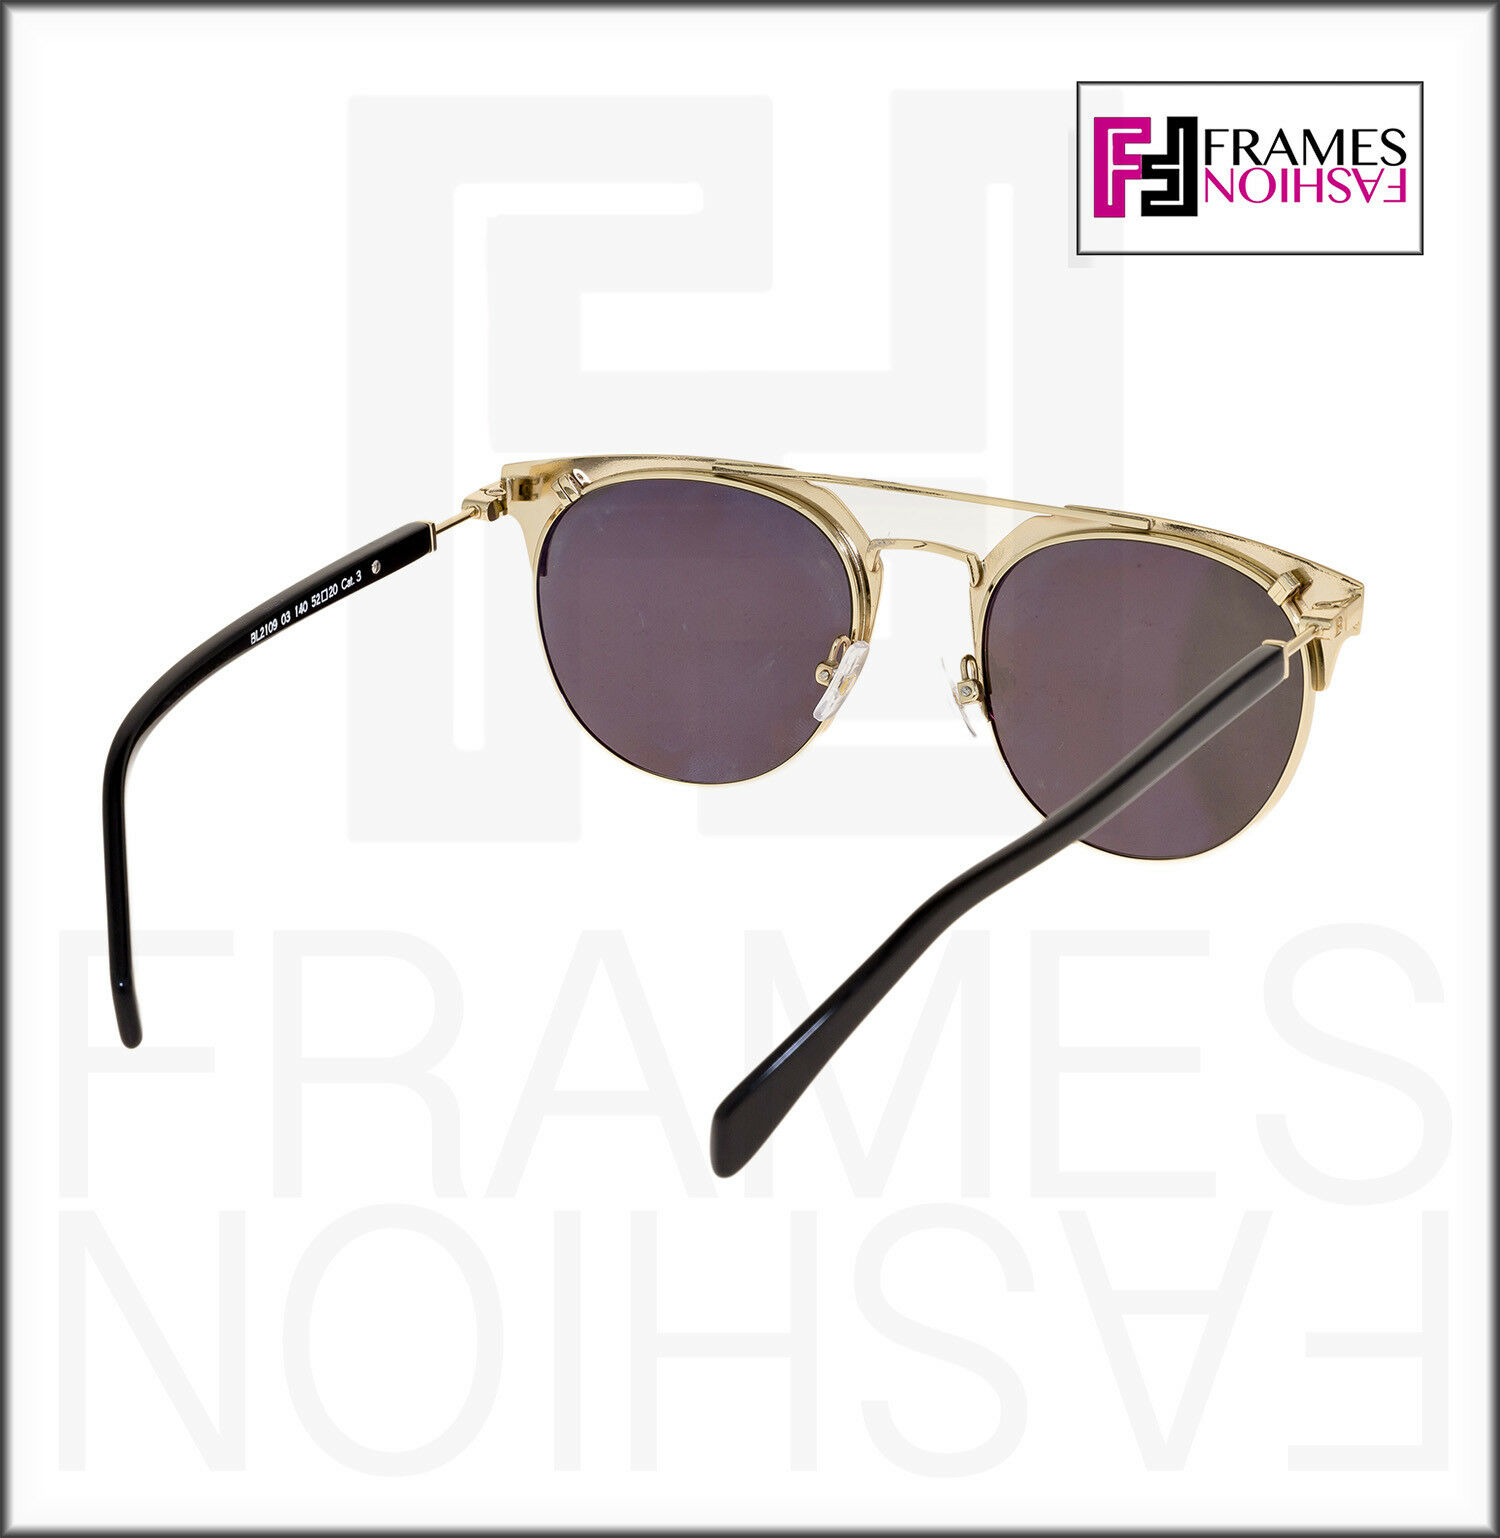 d8b1cd0d98 Balmain BL 2109 Black Gold Flash Mirror Clubmaster Metal Sunglasses Bl2109  for sale online